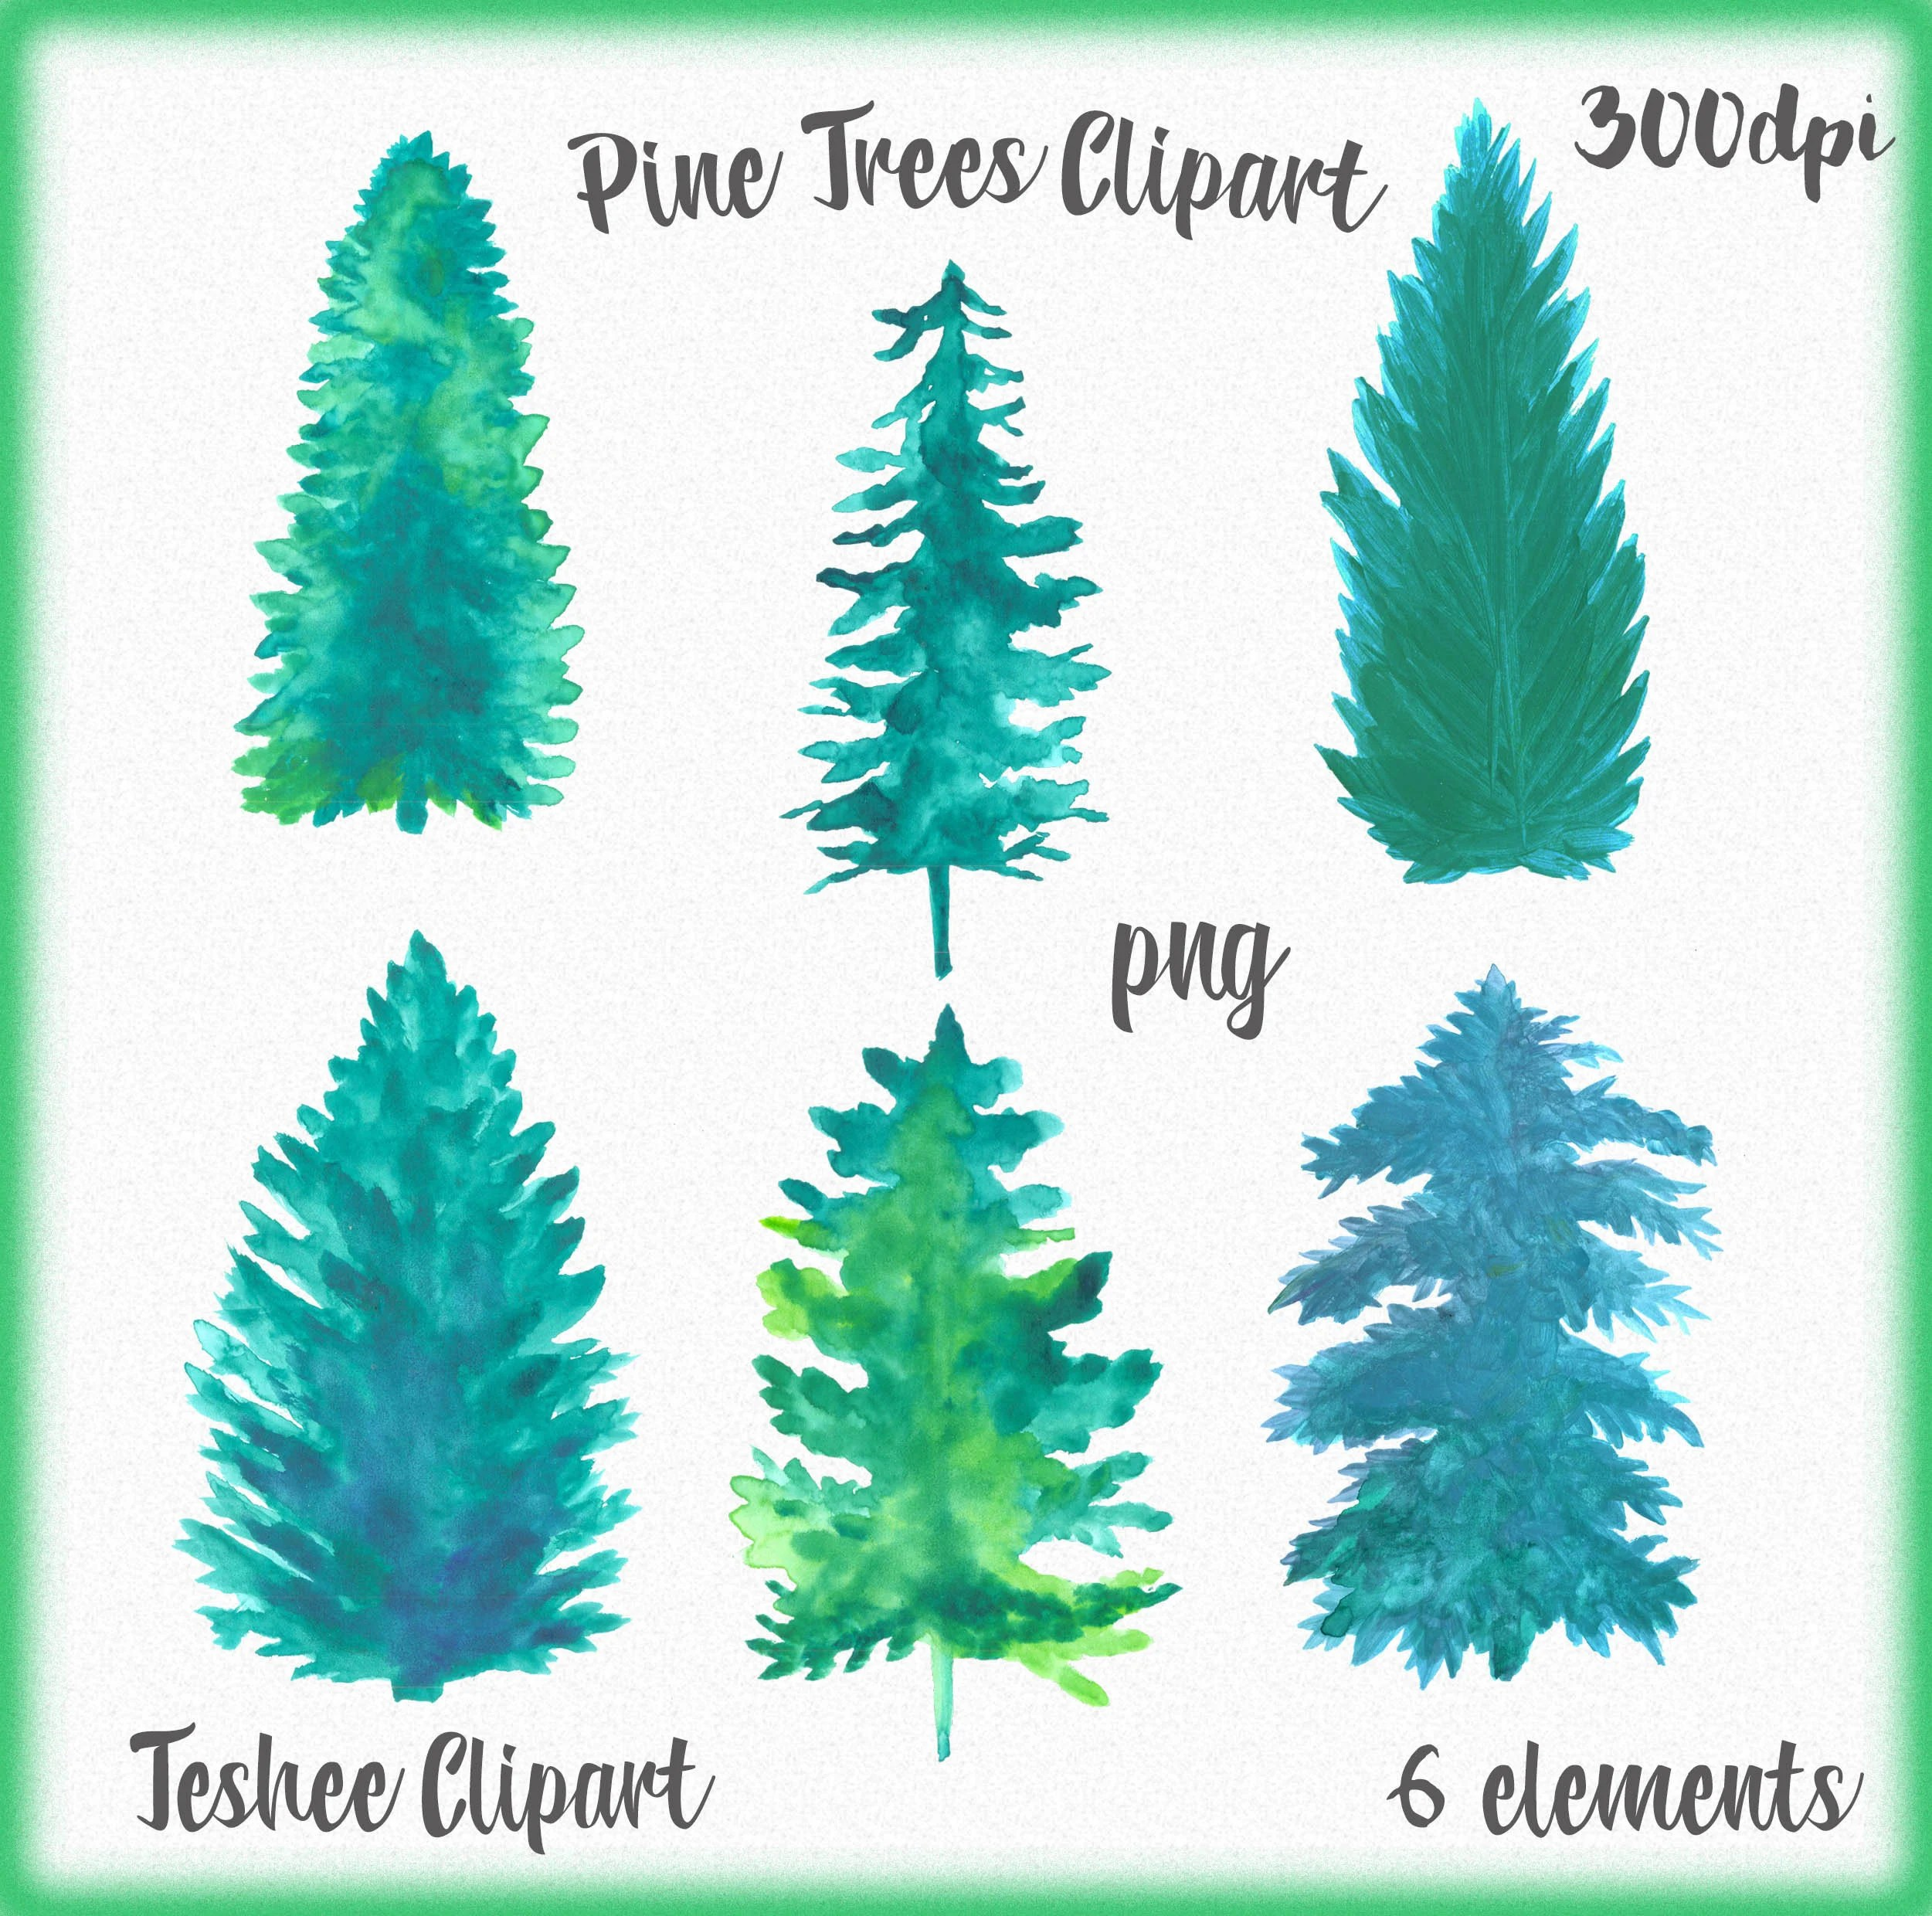 pine trees clipart watercolor